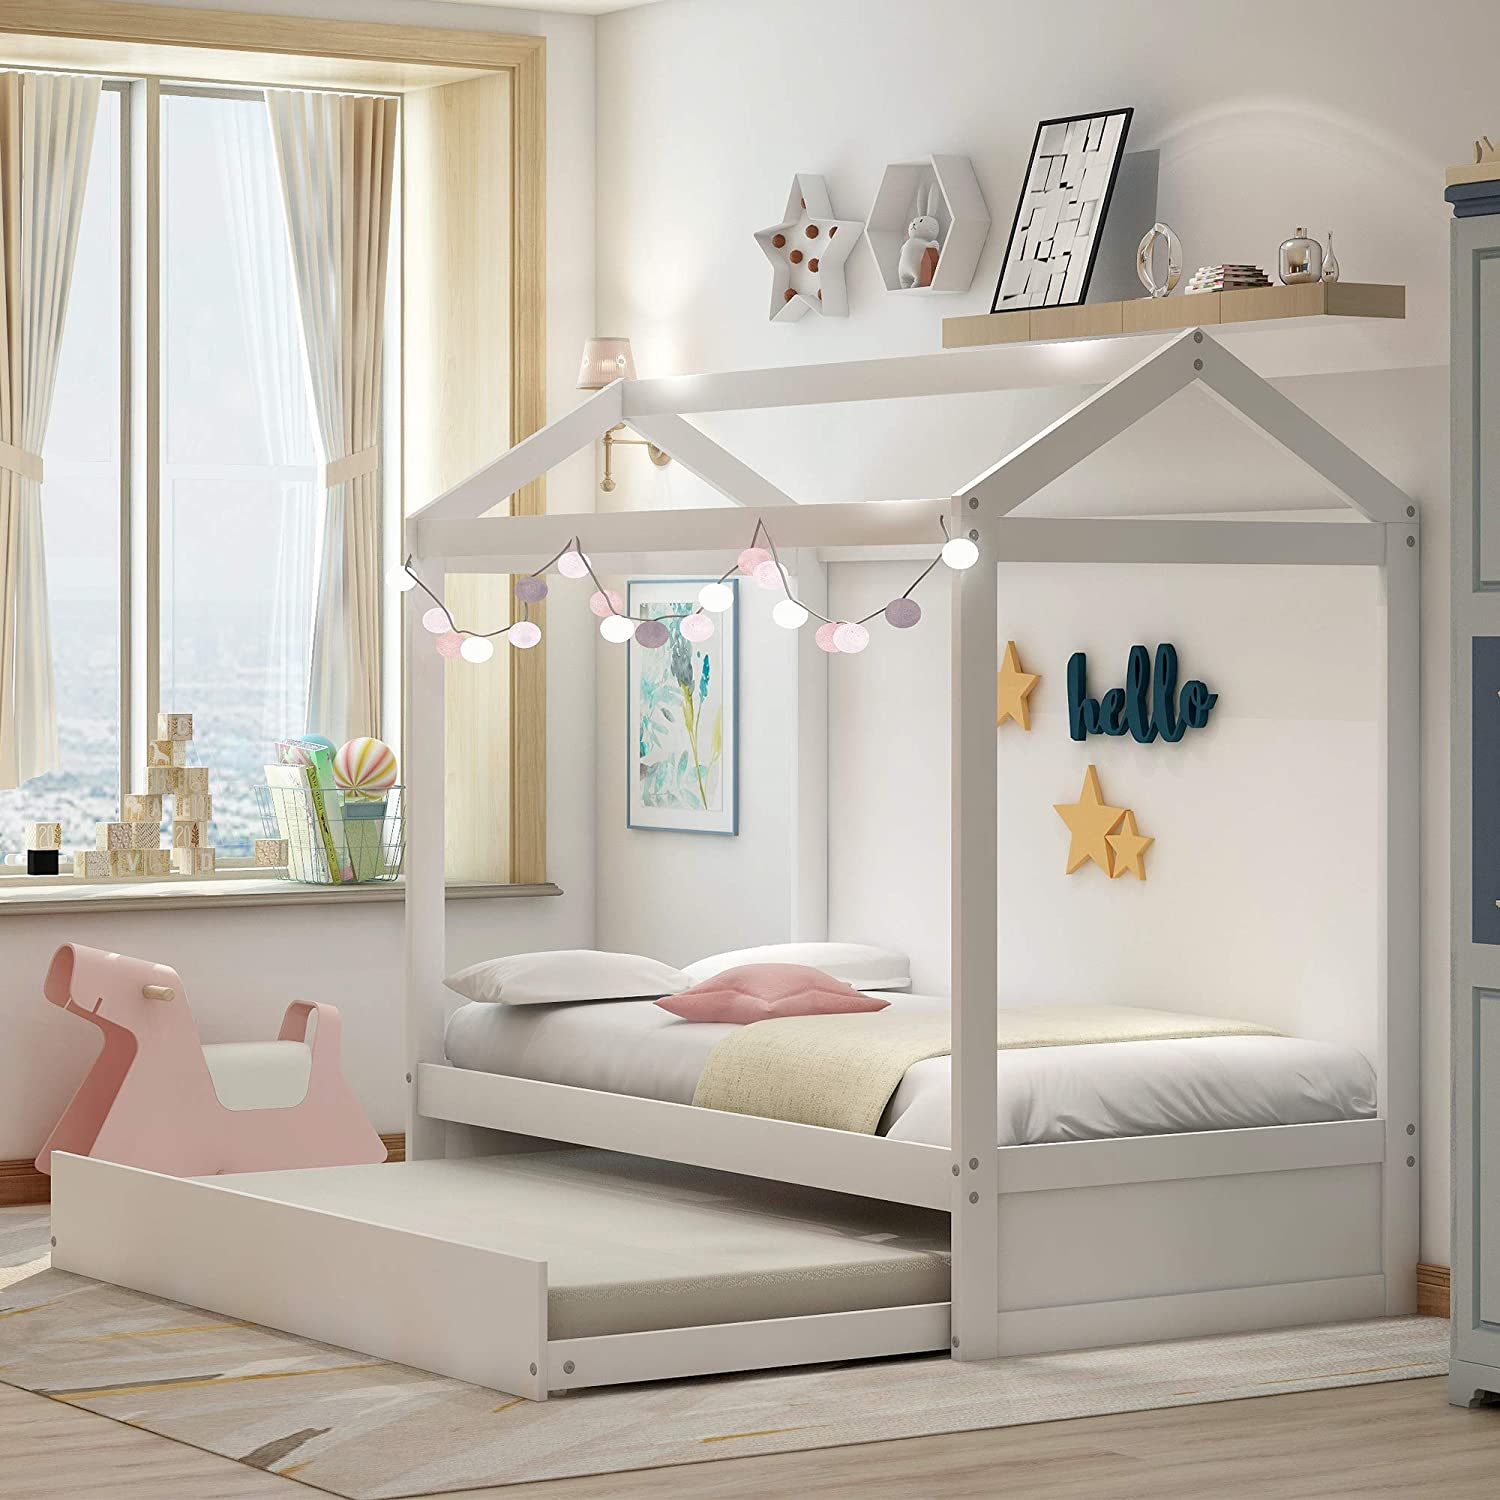 Floor Bed, Daybed for Kids with Trundle Bed, House Shape Wooden Bed Frame with Roof, Bedroom Furniture, Can be Decorated, Tent, White/Twin